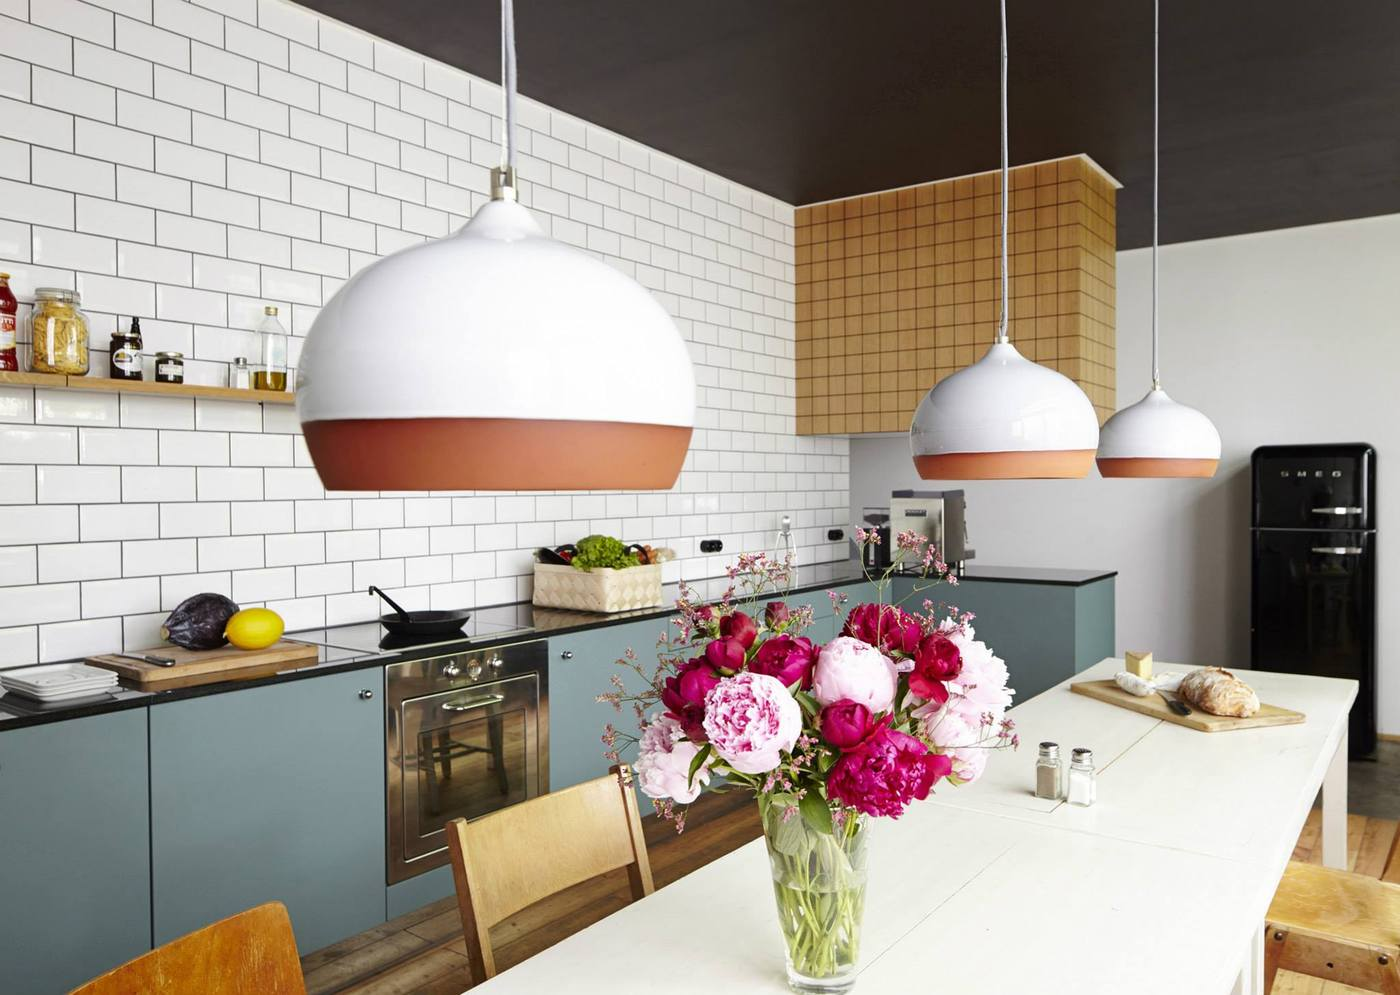 White subway tile kitchen designs are incredibly universal for Different kitchen designs